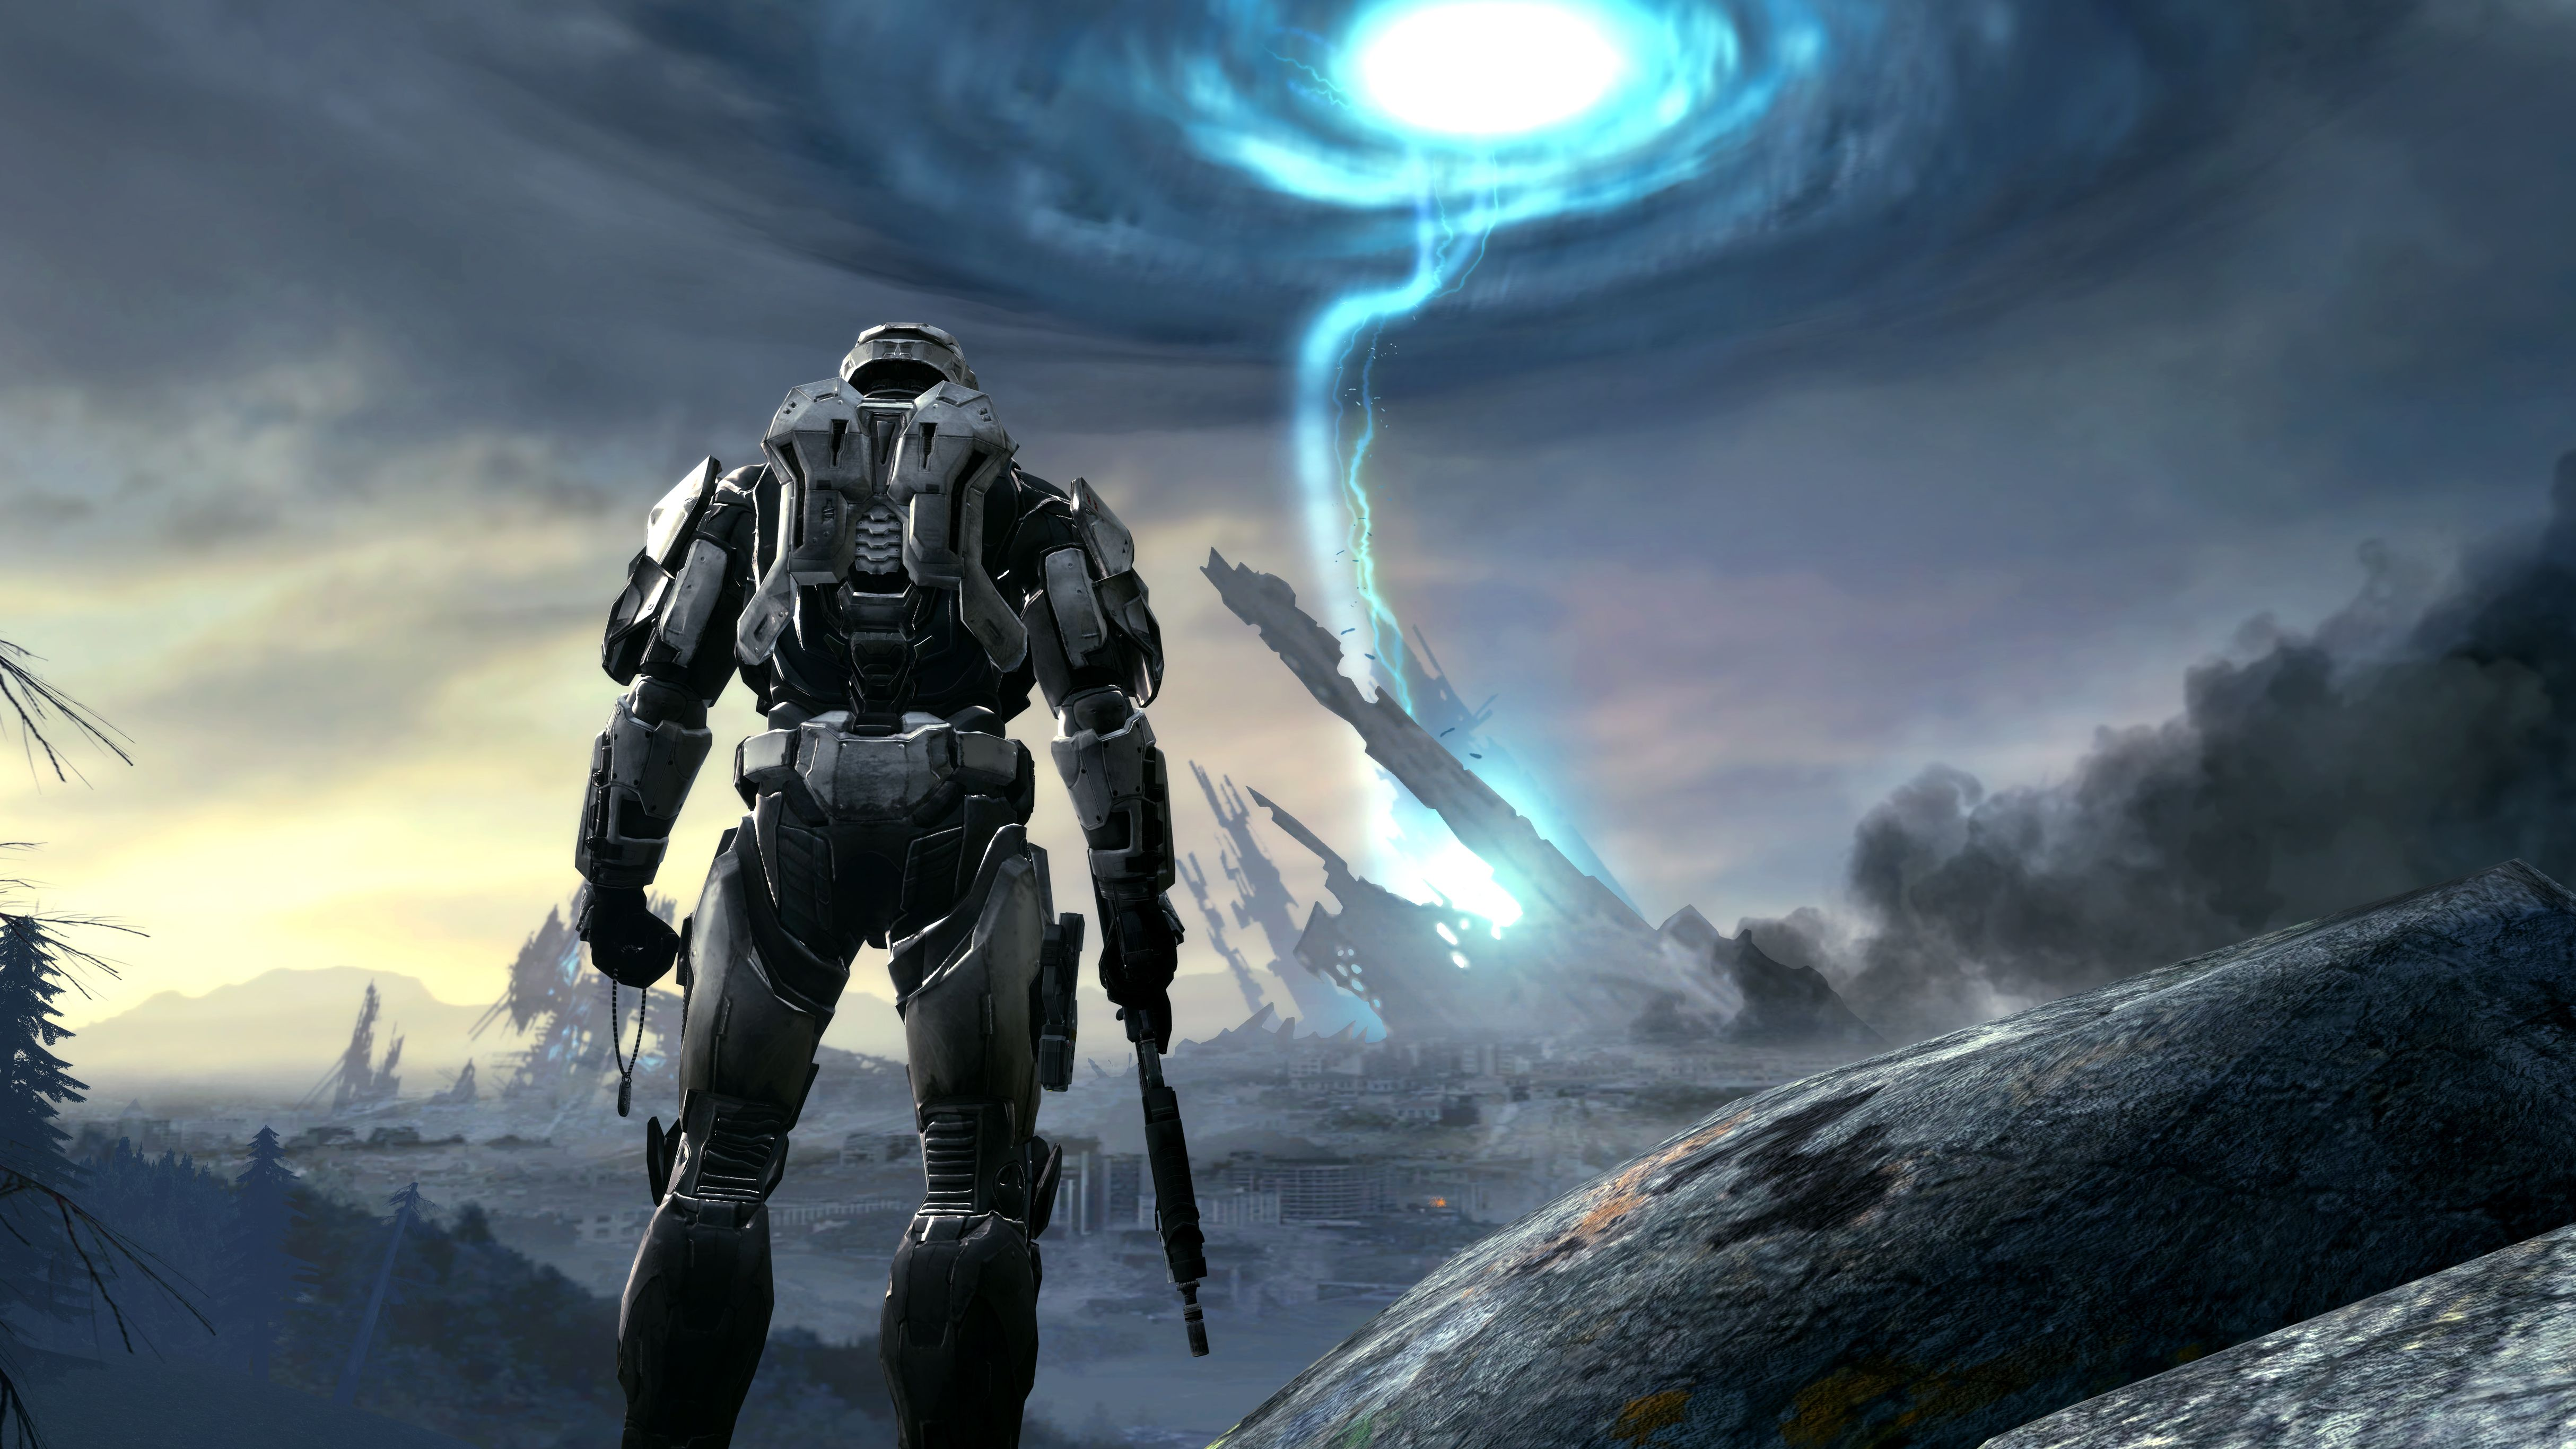 Halo Master Chief 4k Wallpapers Top Free Halo Master Chief